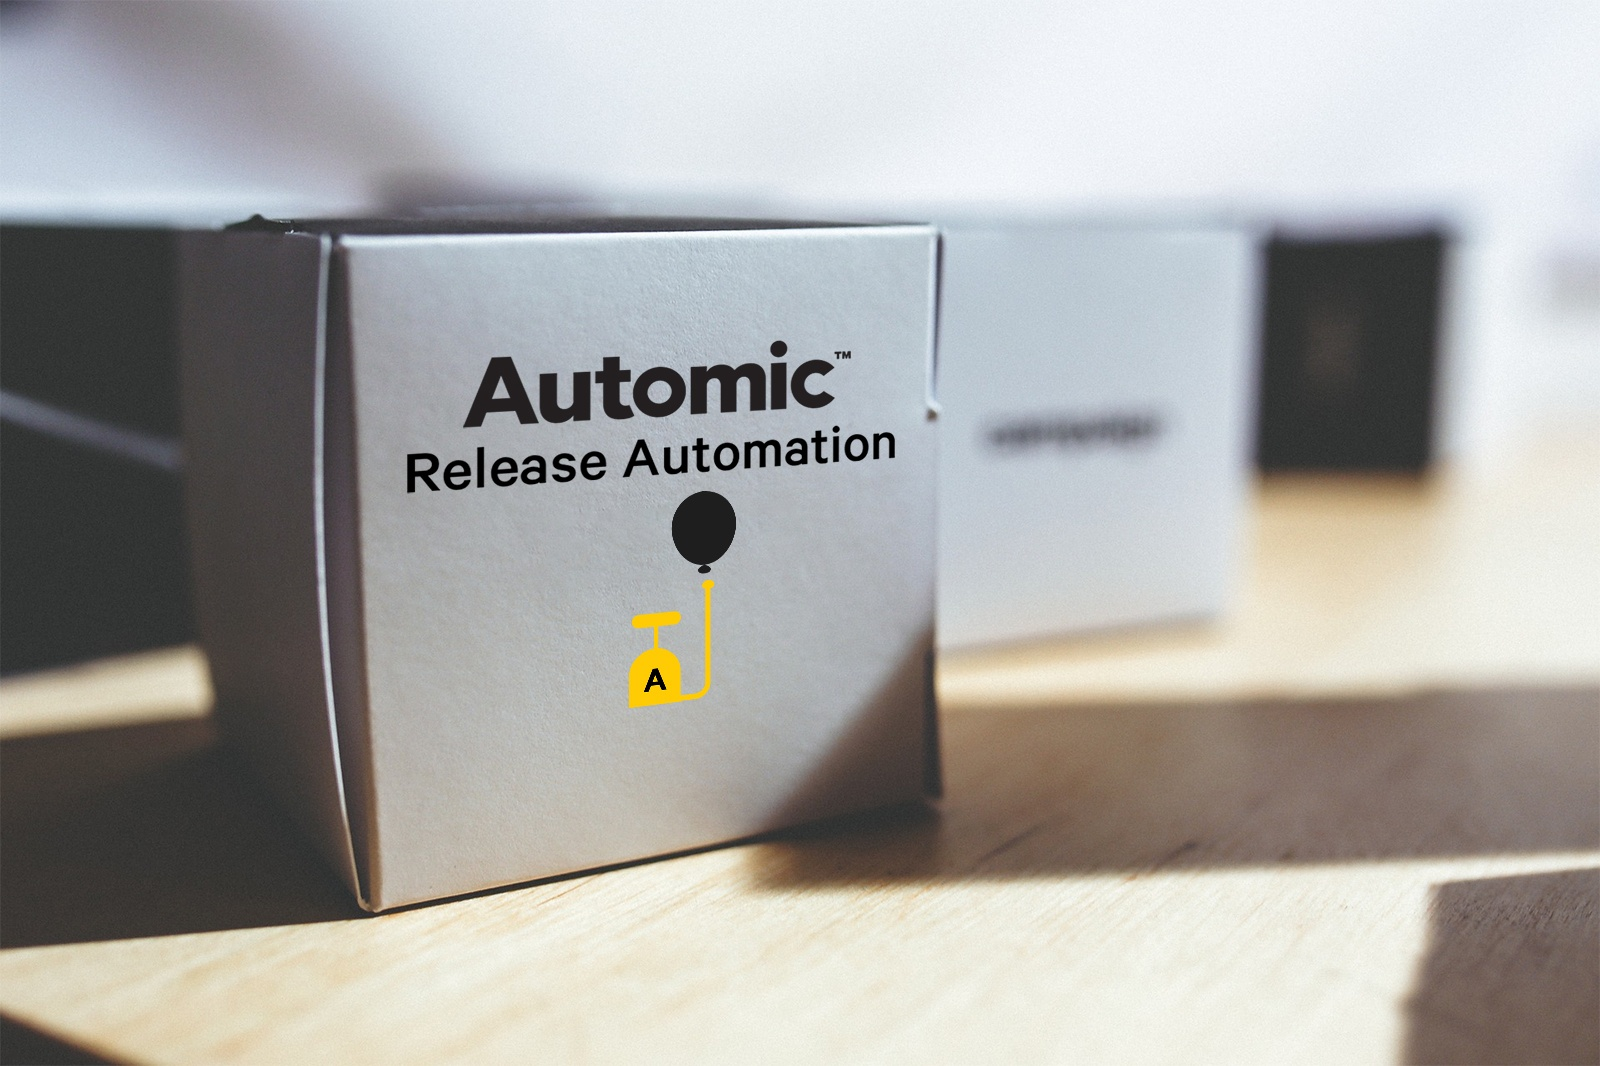 10 Things Automic Release Automation can do out of the box